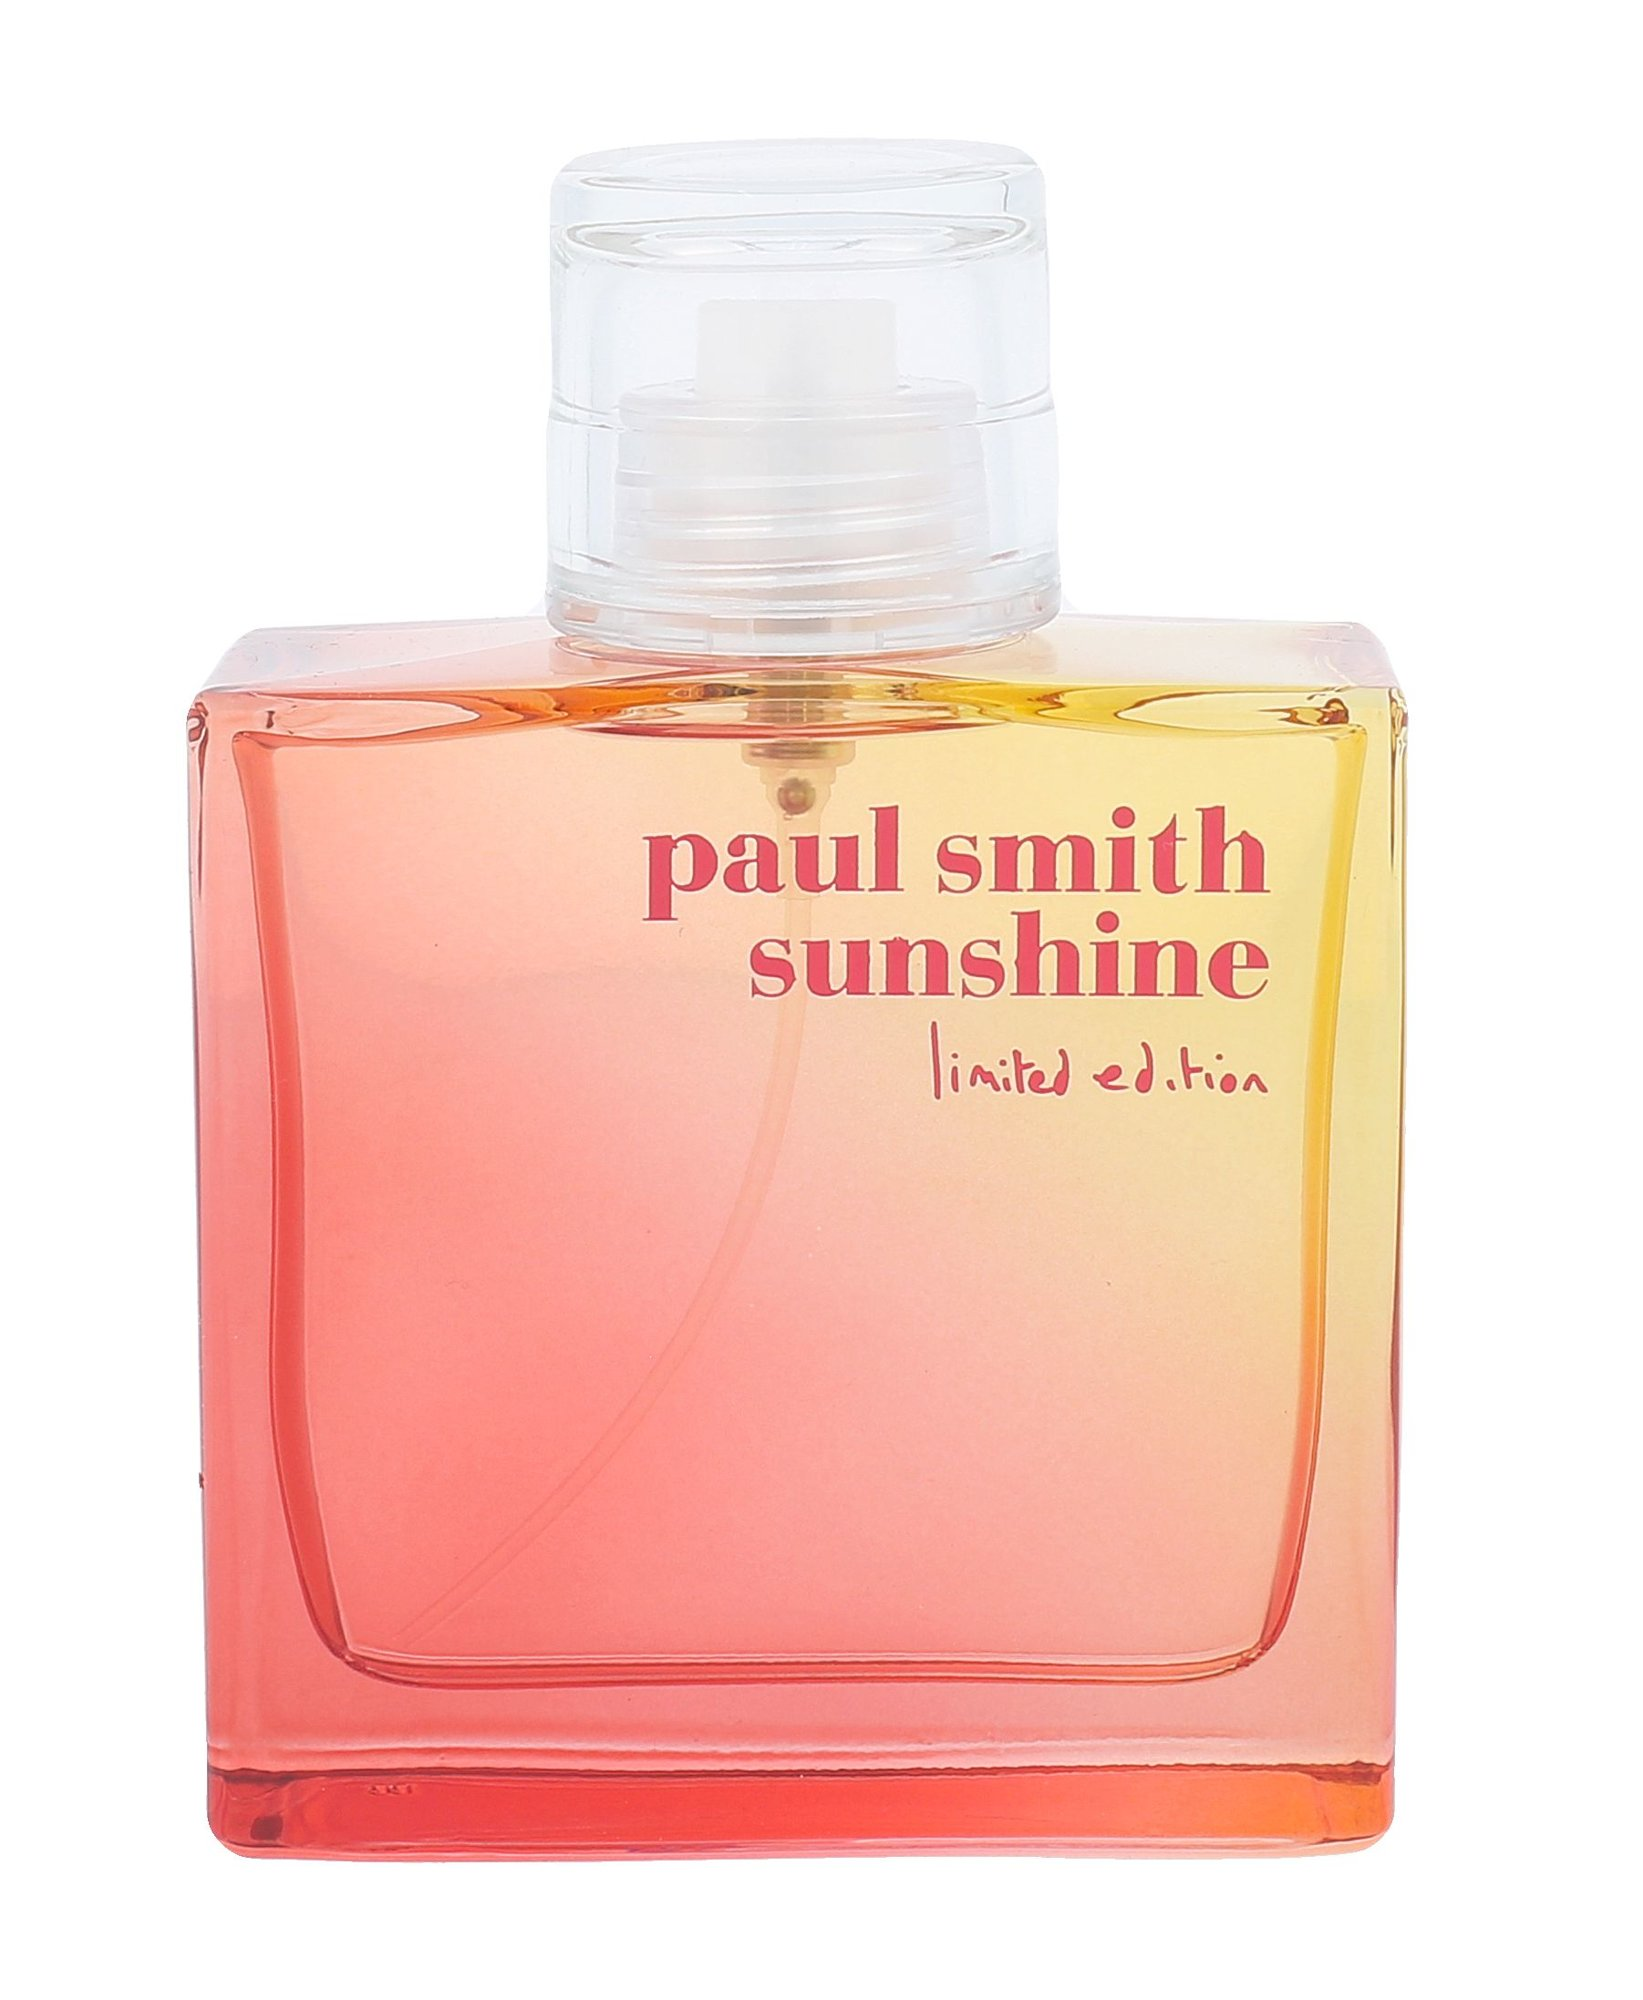 Paul Smith Sunshine For Women EDT 100ml  Limited Edition 2015